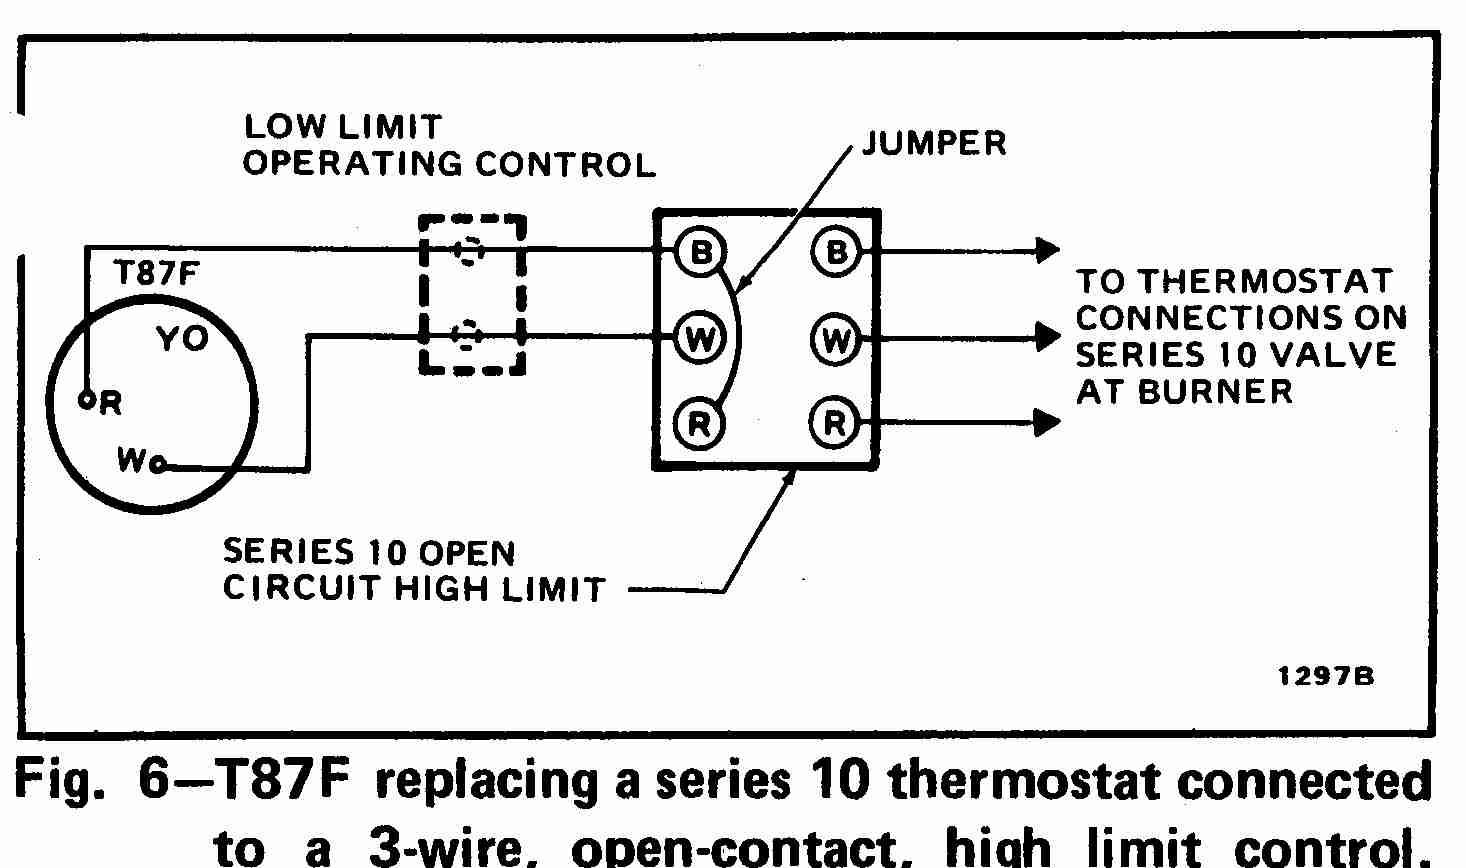 Heater Thermostat Diagram Electrical Wiring How To Wire A Water Room Diagrams For Hvac Systems Rh Inspectapedia Com Electric Baseboard